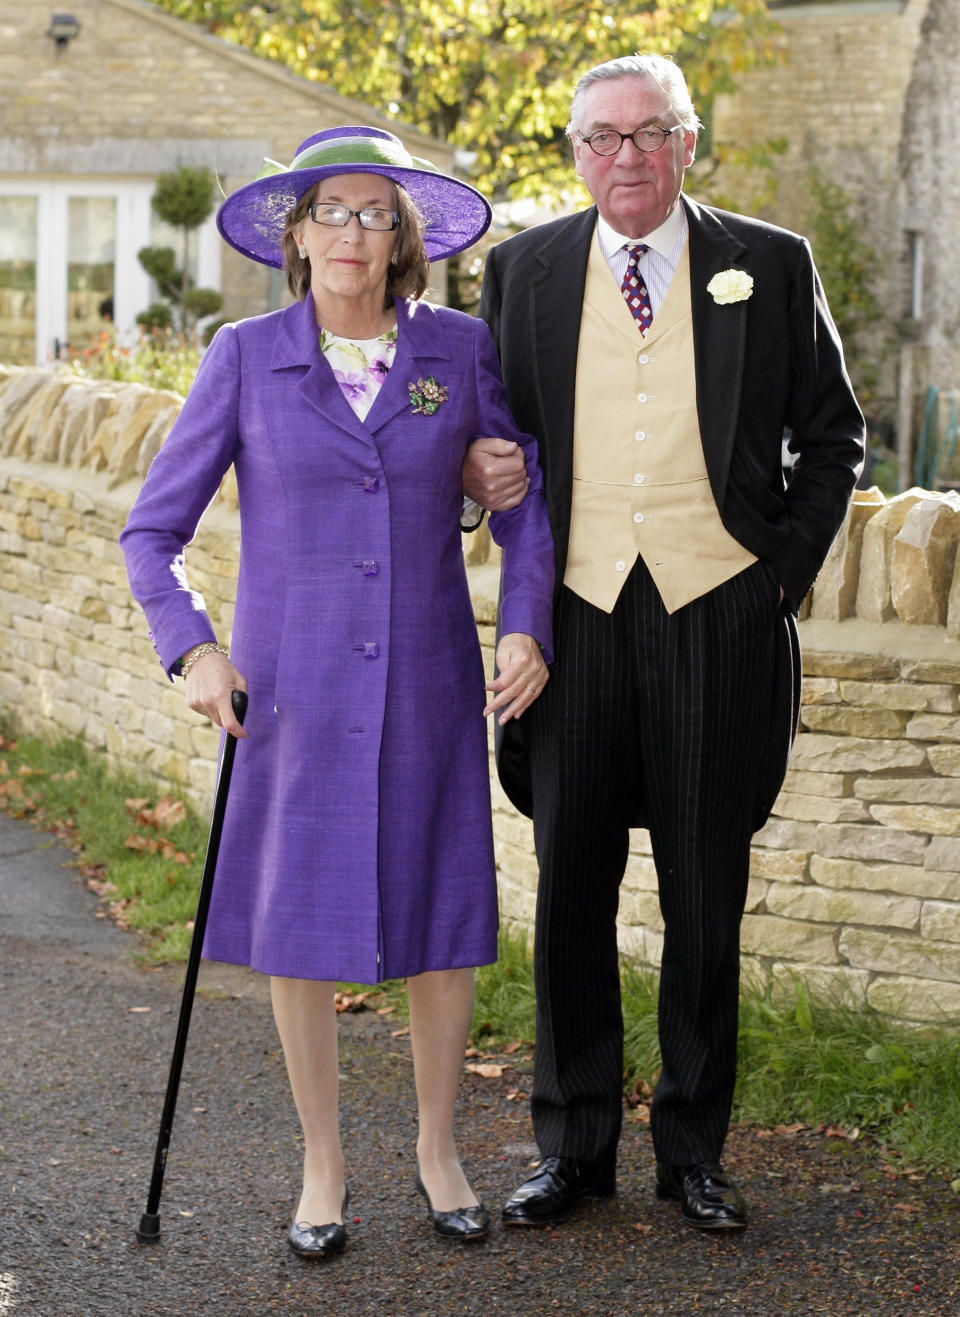 NORTHLEACH, UNITED KINGDOM - OCTOBER 23: (EMBARGOED FOR PUBLICATION IN UK NEWSPAPERS UNTIL 48 HOURS AFTER CREATE DATE AND TIME) Lady Celia Vestey and Lord Samuel Vestey attend Harry Meade & Rosie Bradford's wedding at the Church of St. Peter and St. Paul on October 23, 2010 in Northleach near Cheltenham, England. (Photo by Indigo/Getty Images)